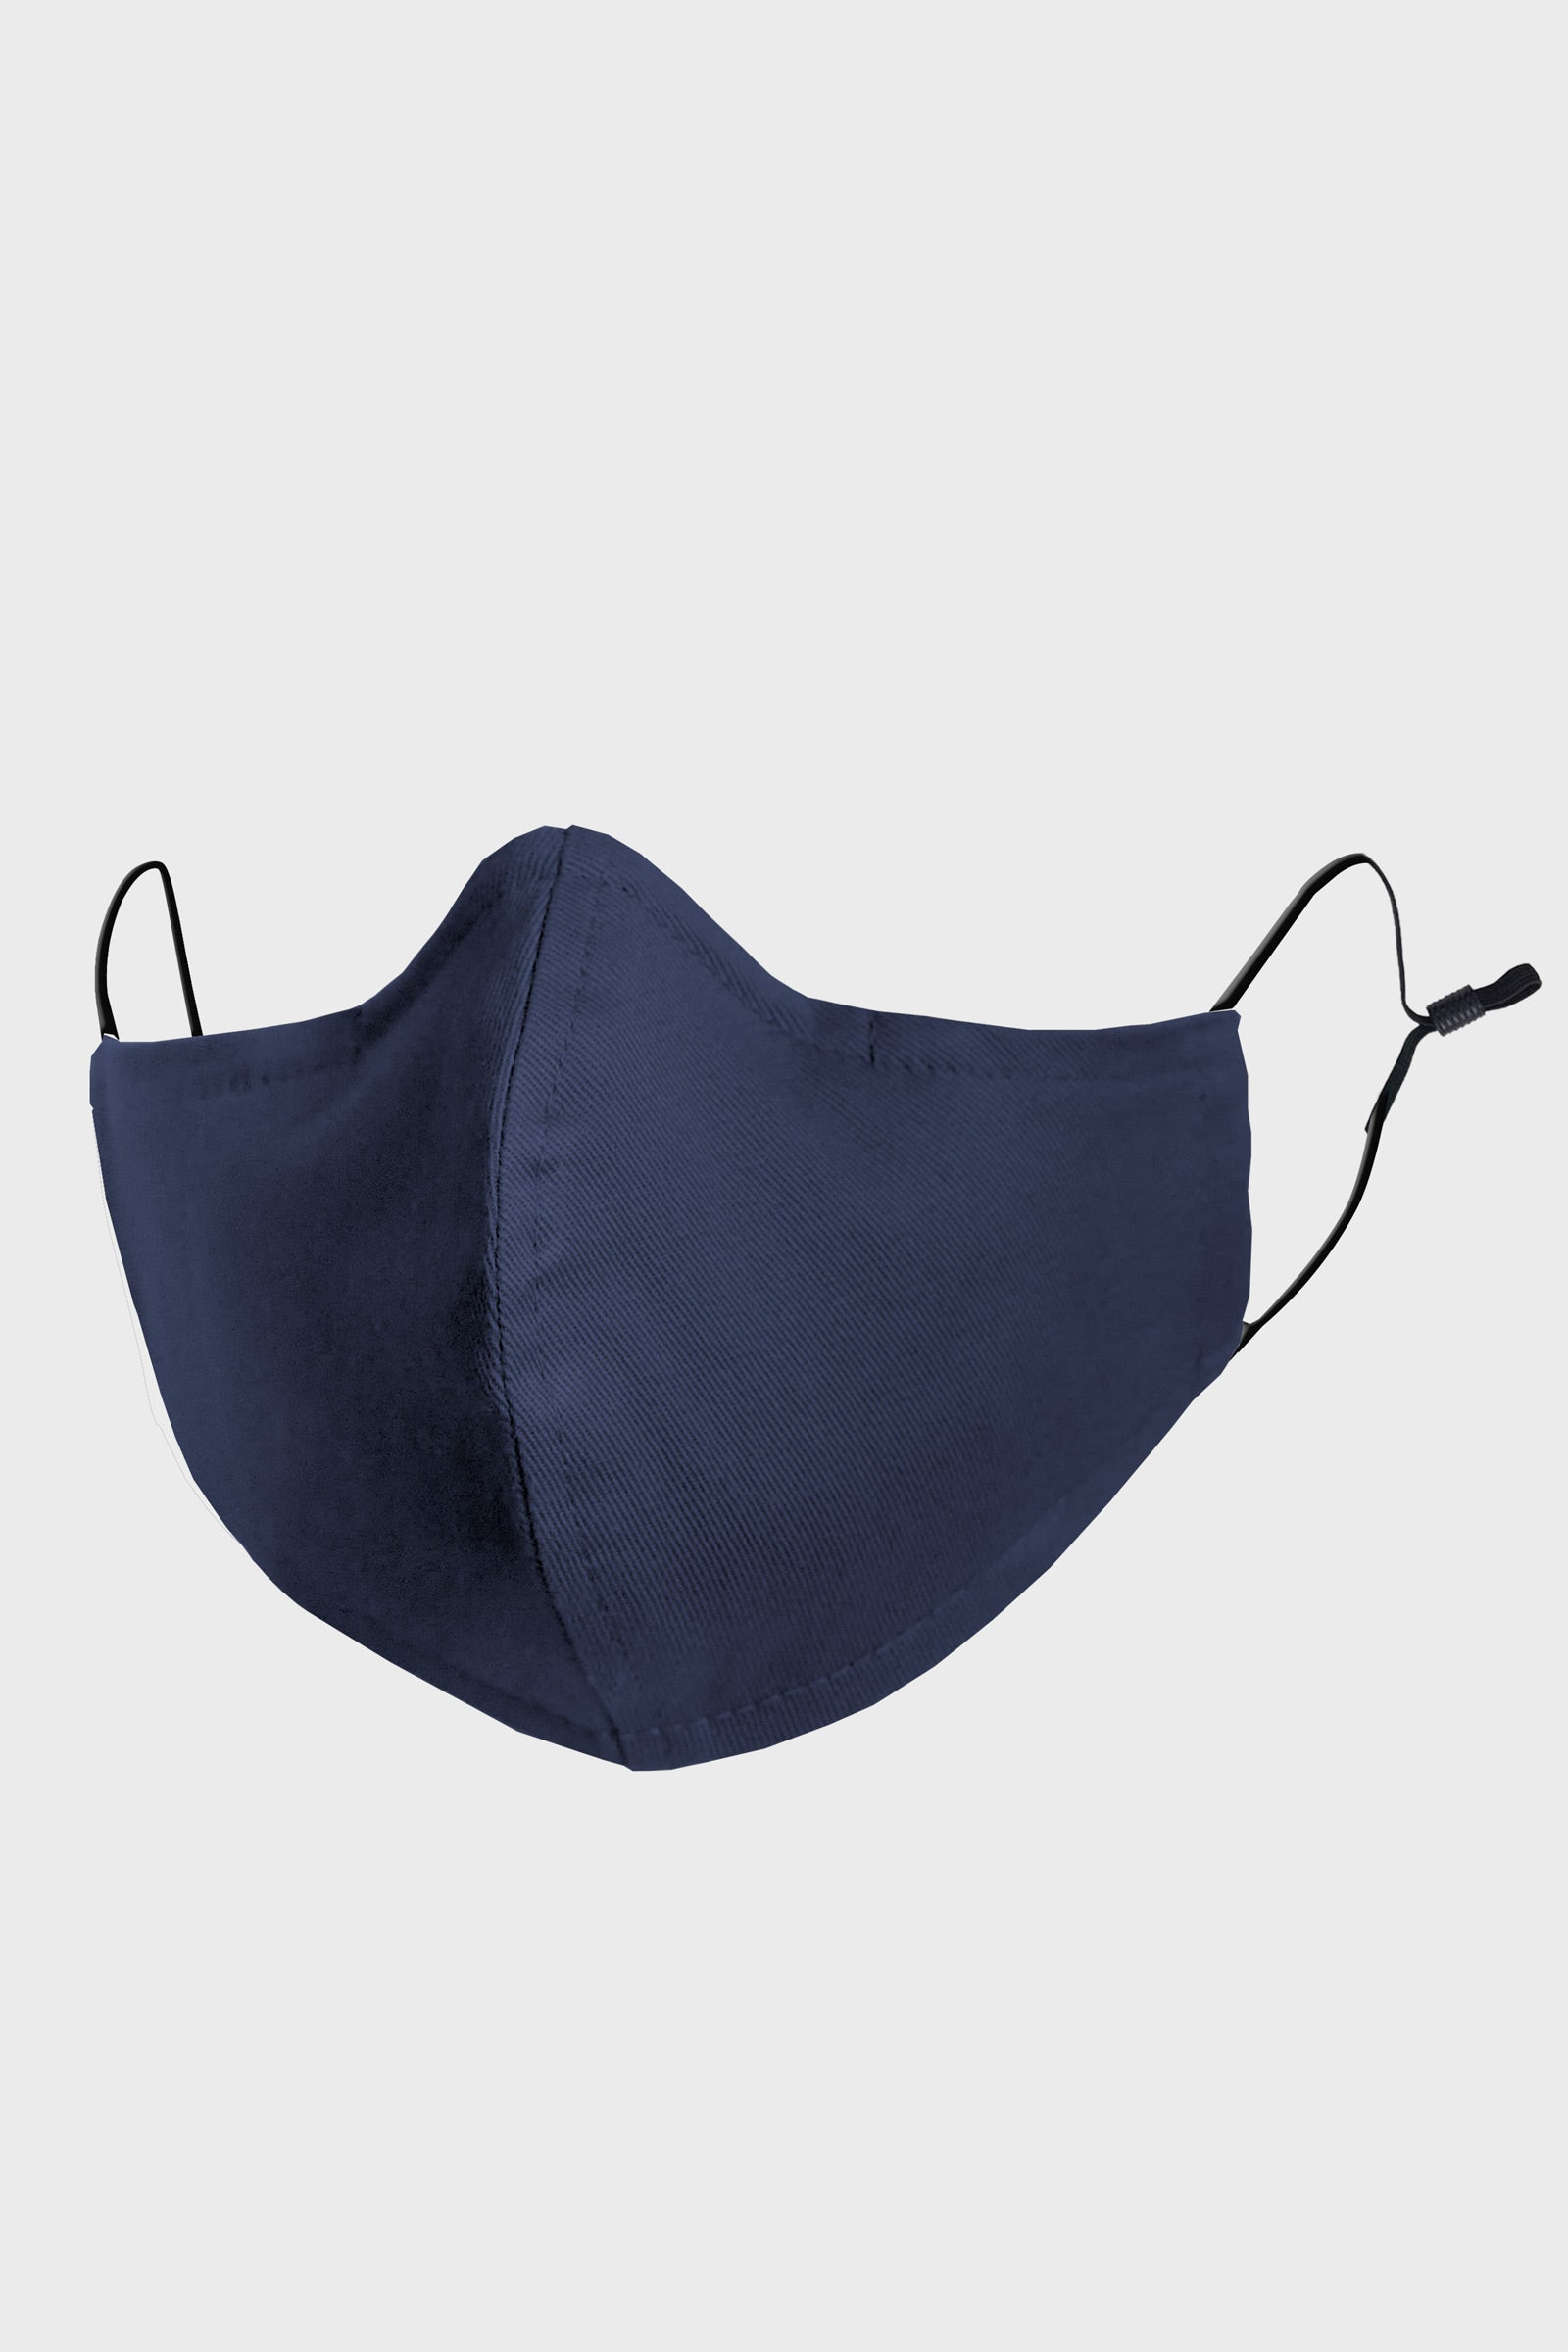 Retail NDSTRY Mask - Navy